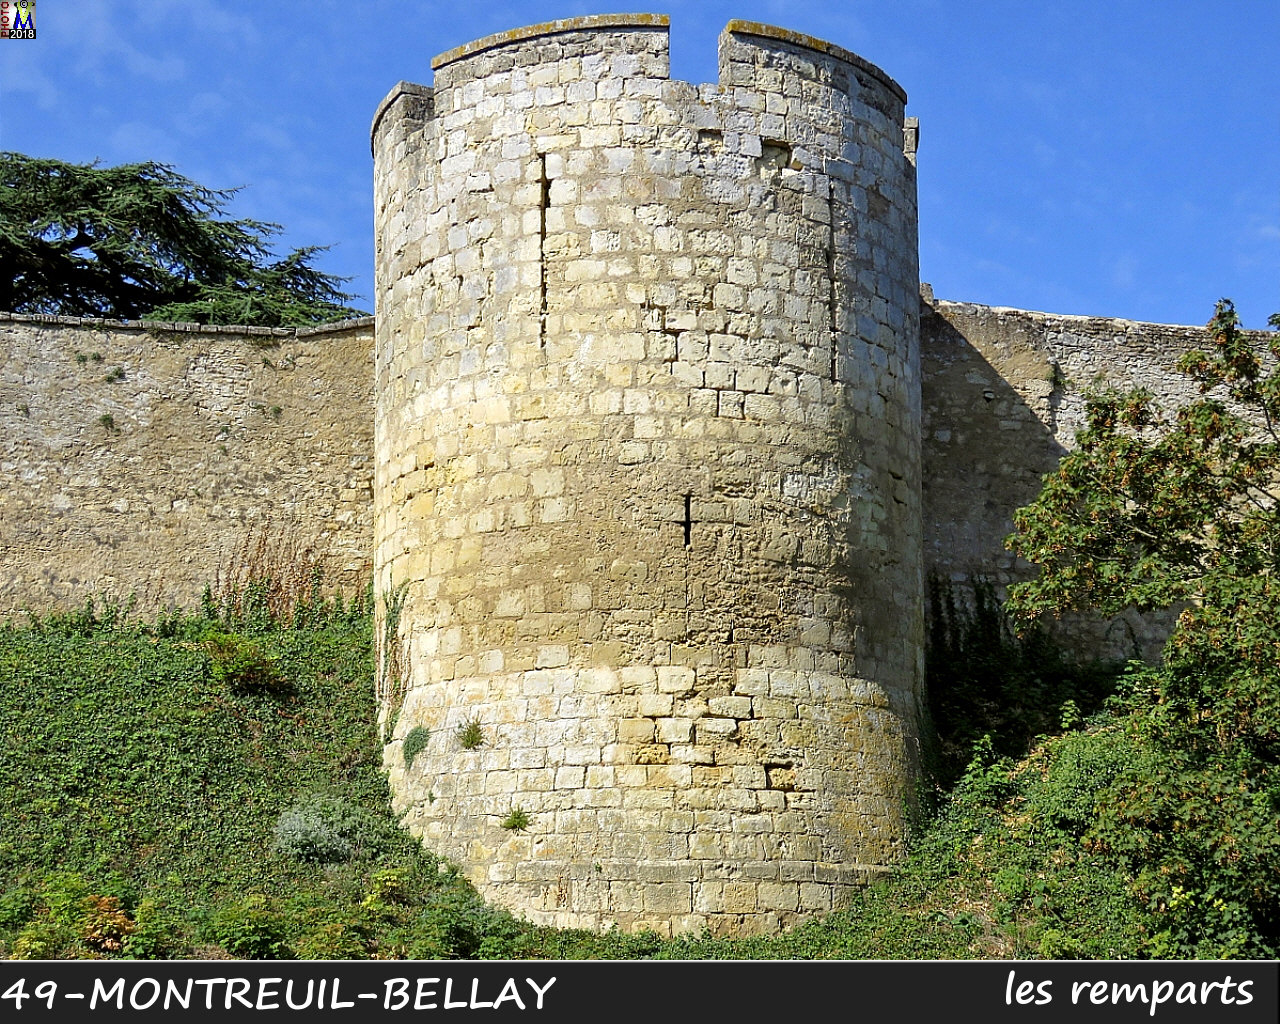 49MONTREUIL-BELLAY_remparts_1030.jpg